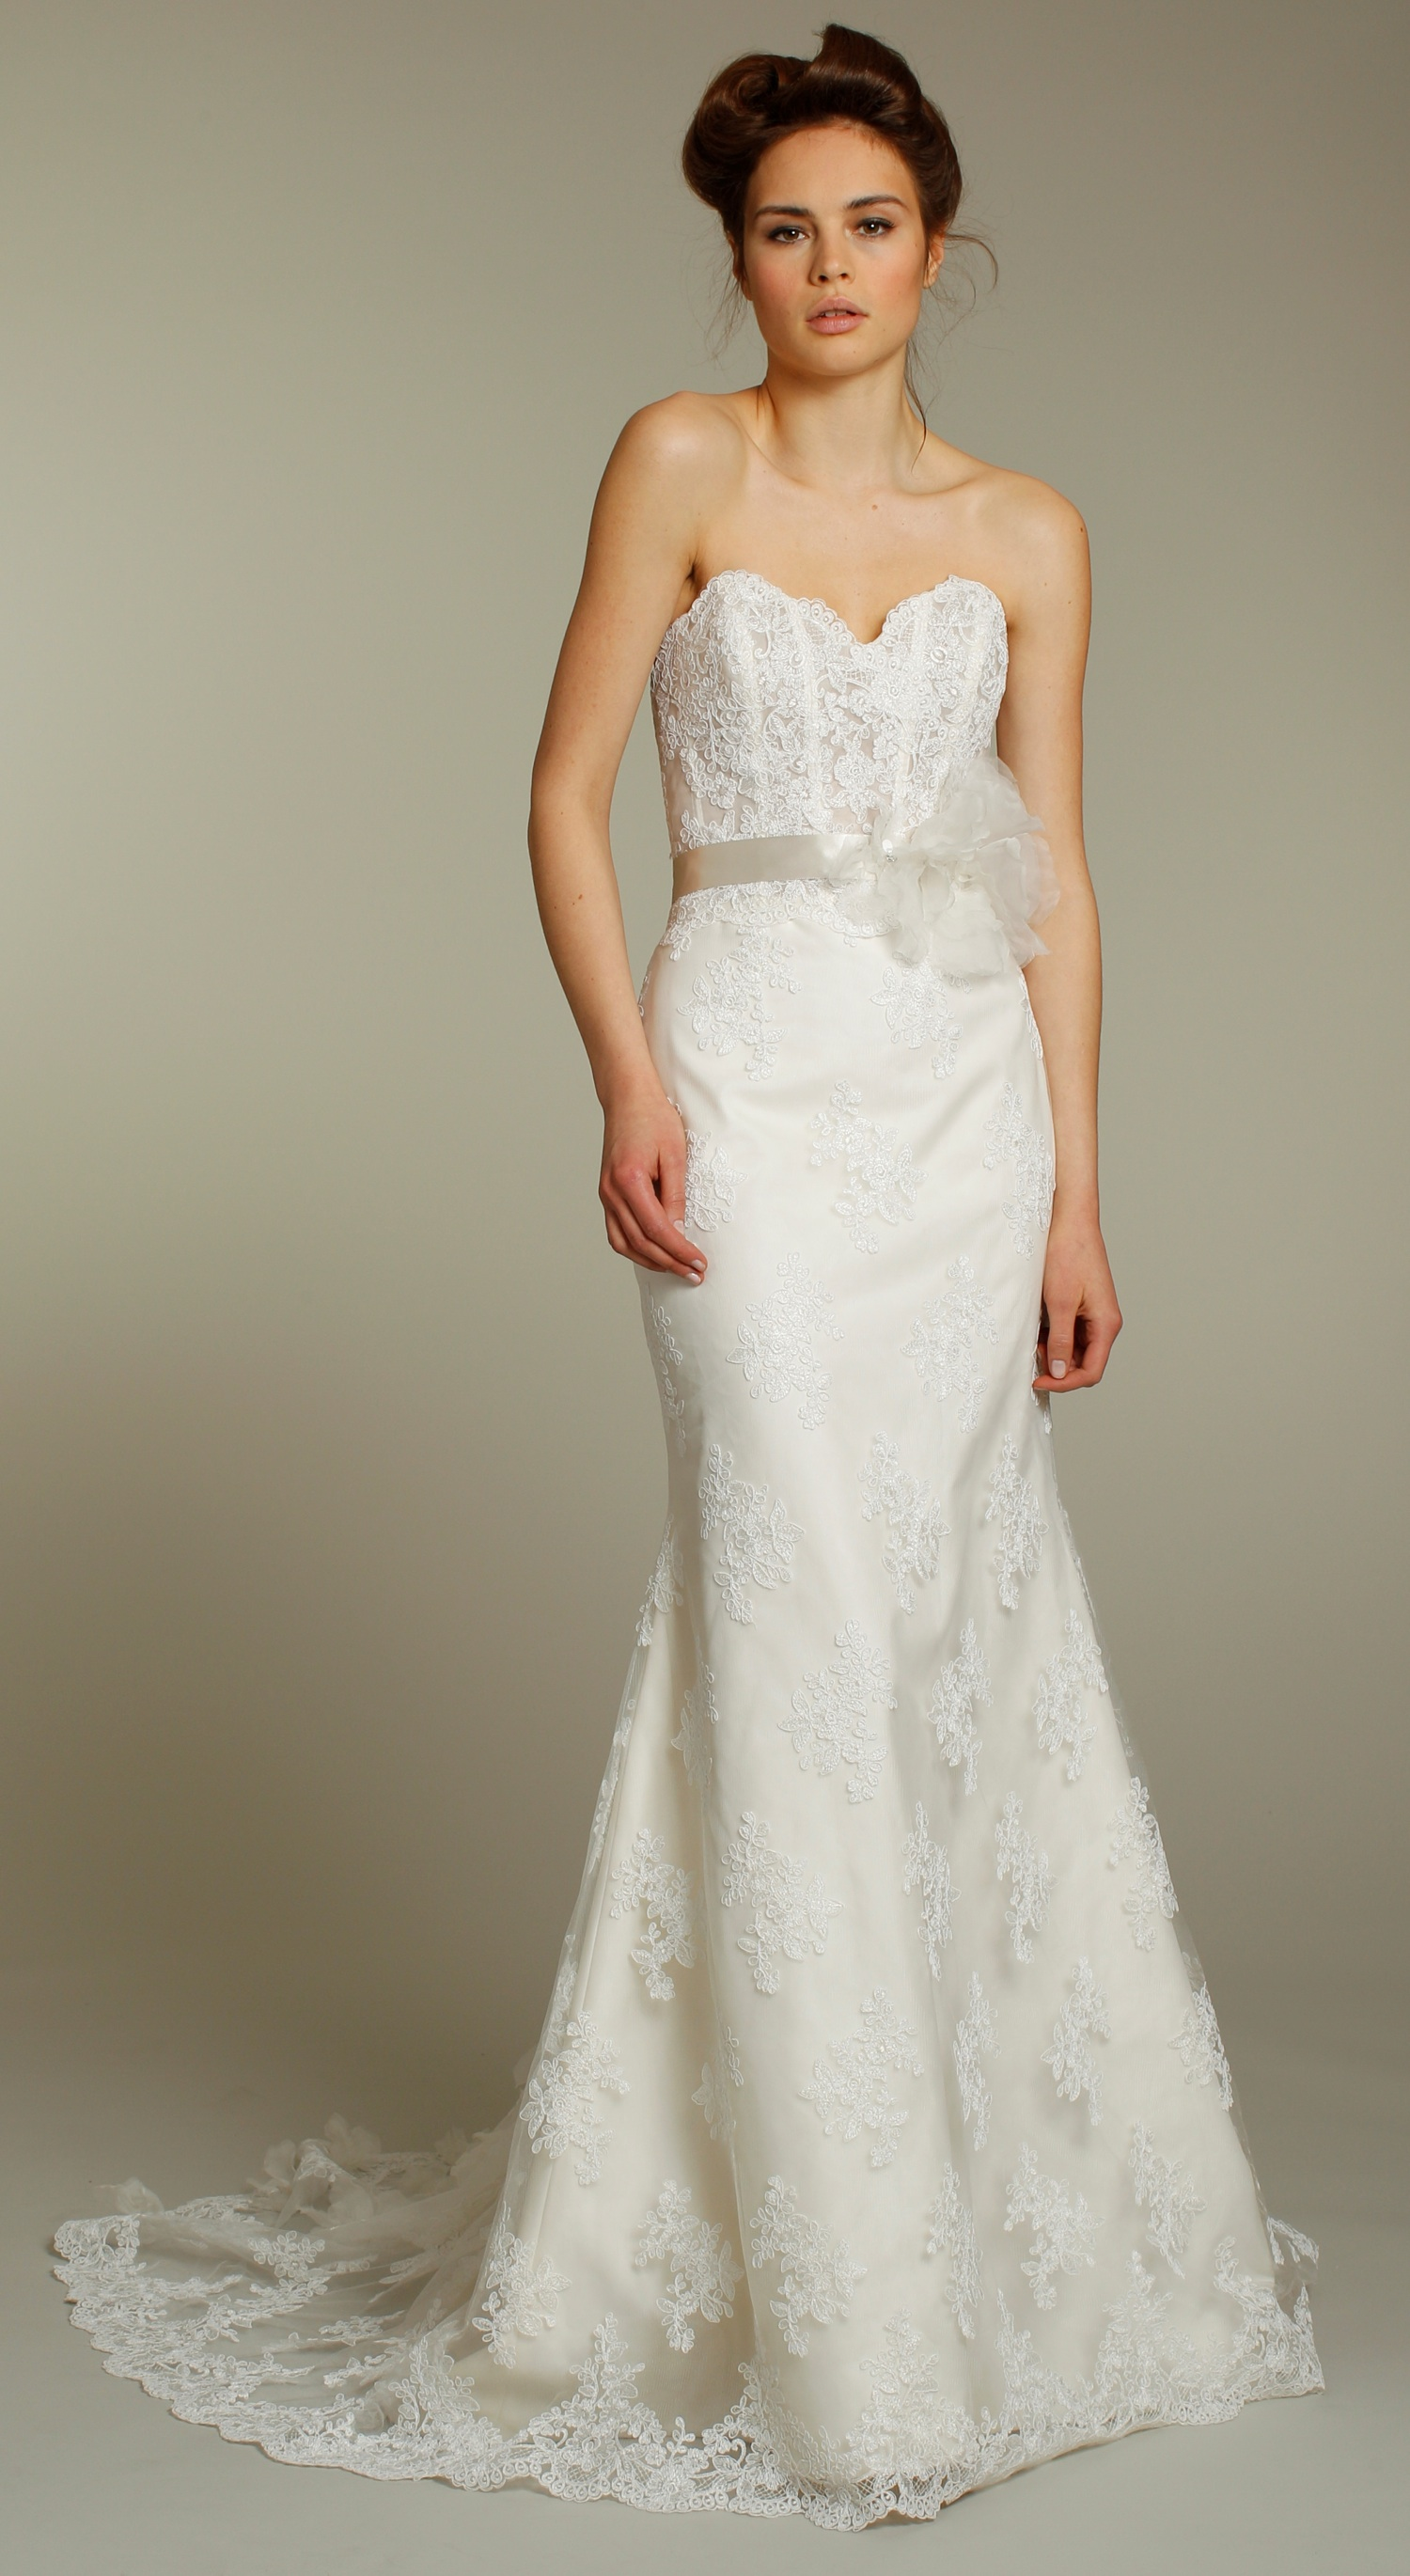 Romantic lace column wedding dress with spaghetti straps